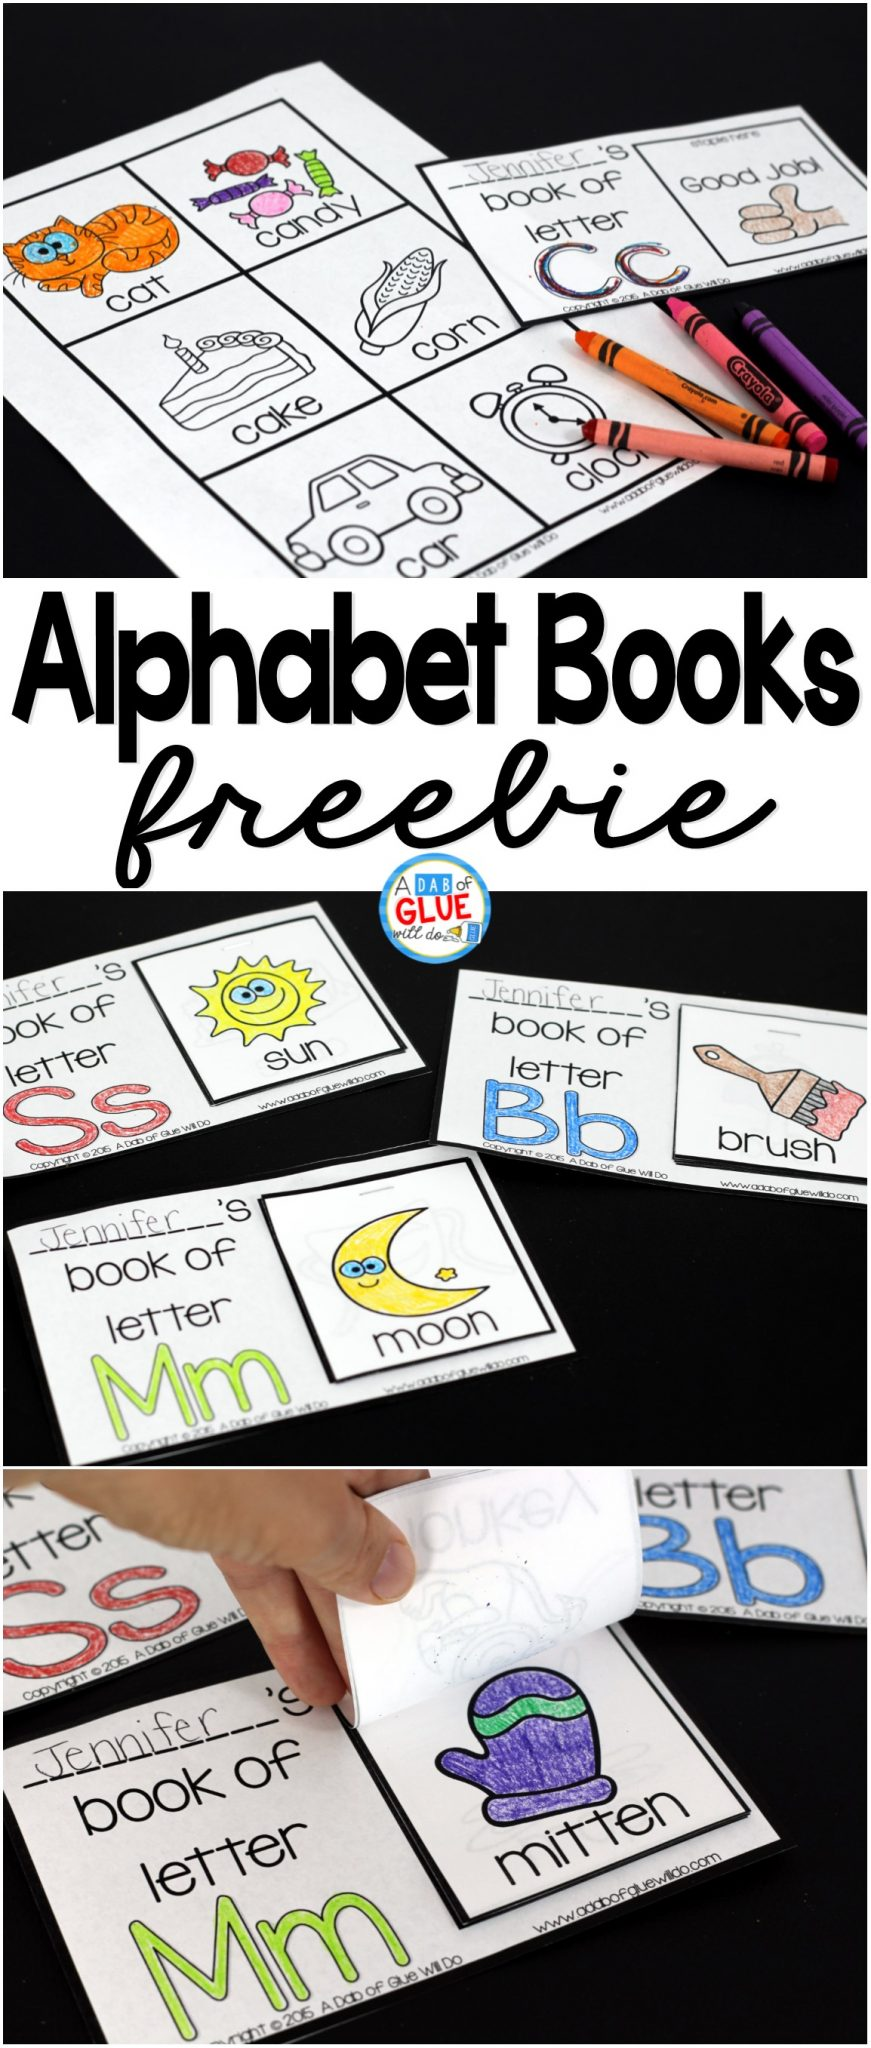 graphic relating to Free Printable Alphabet Books called Alphabet Transform Textbooks - A Dab of Glue Will Do